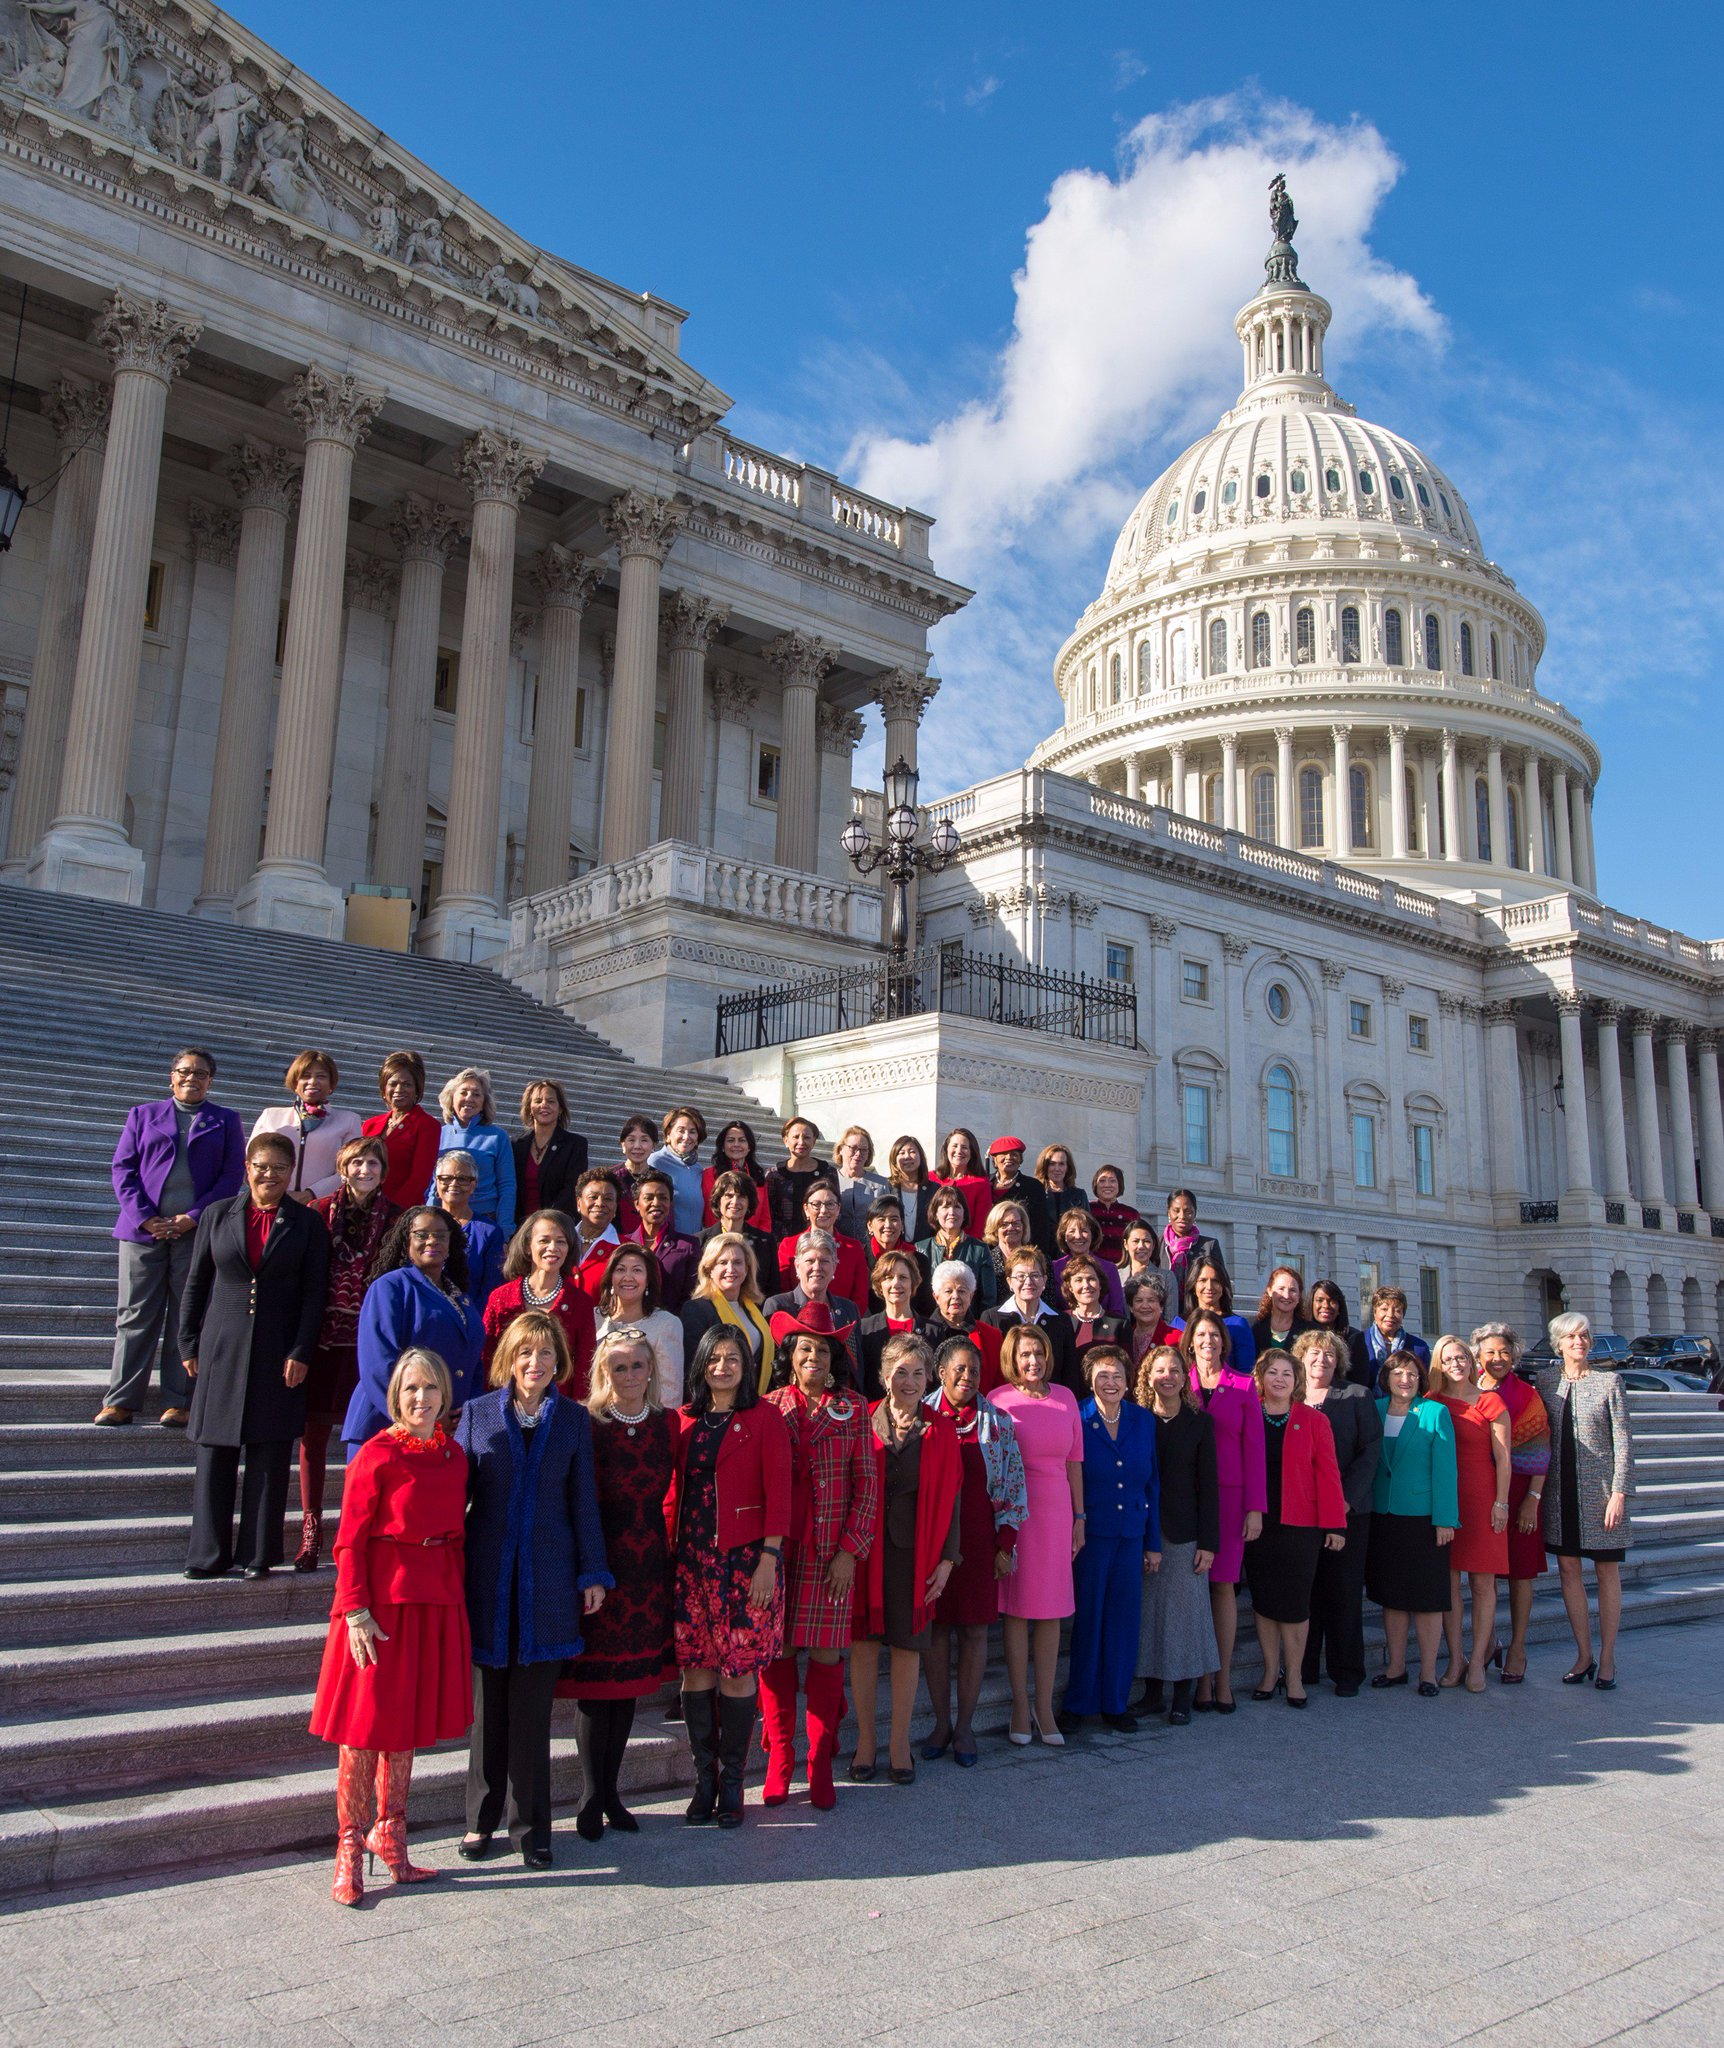 The 65 House Democratic women of the 115th Congress